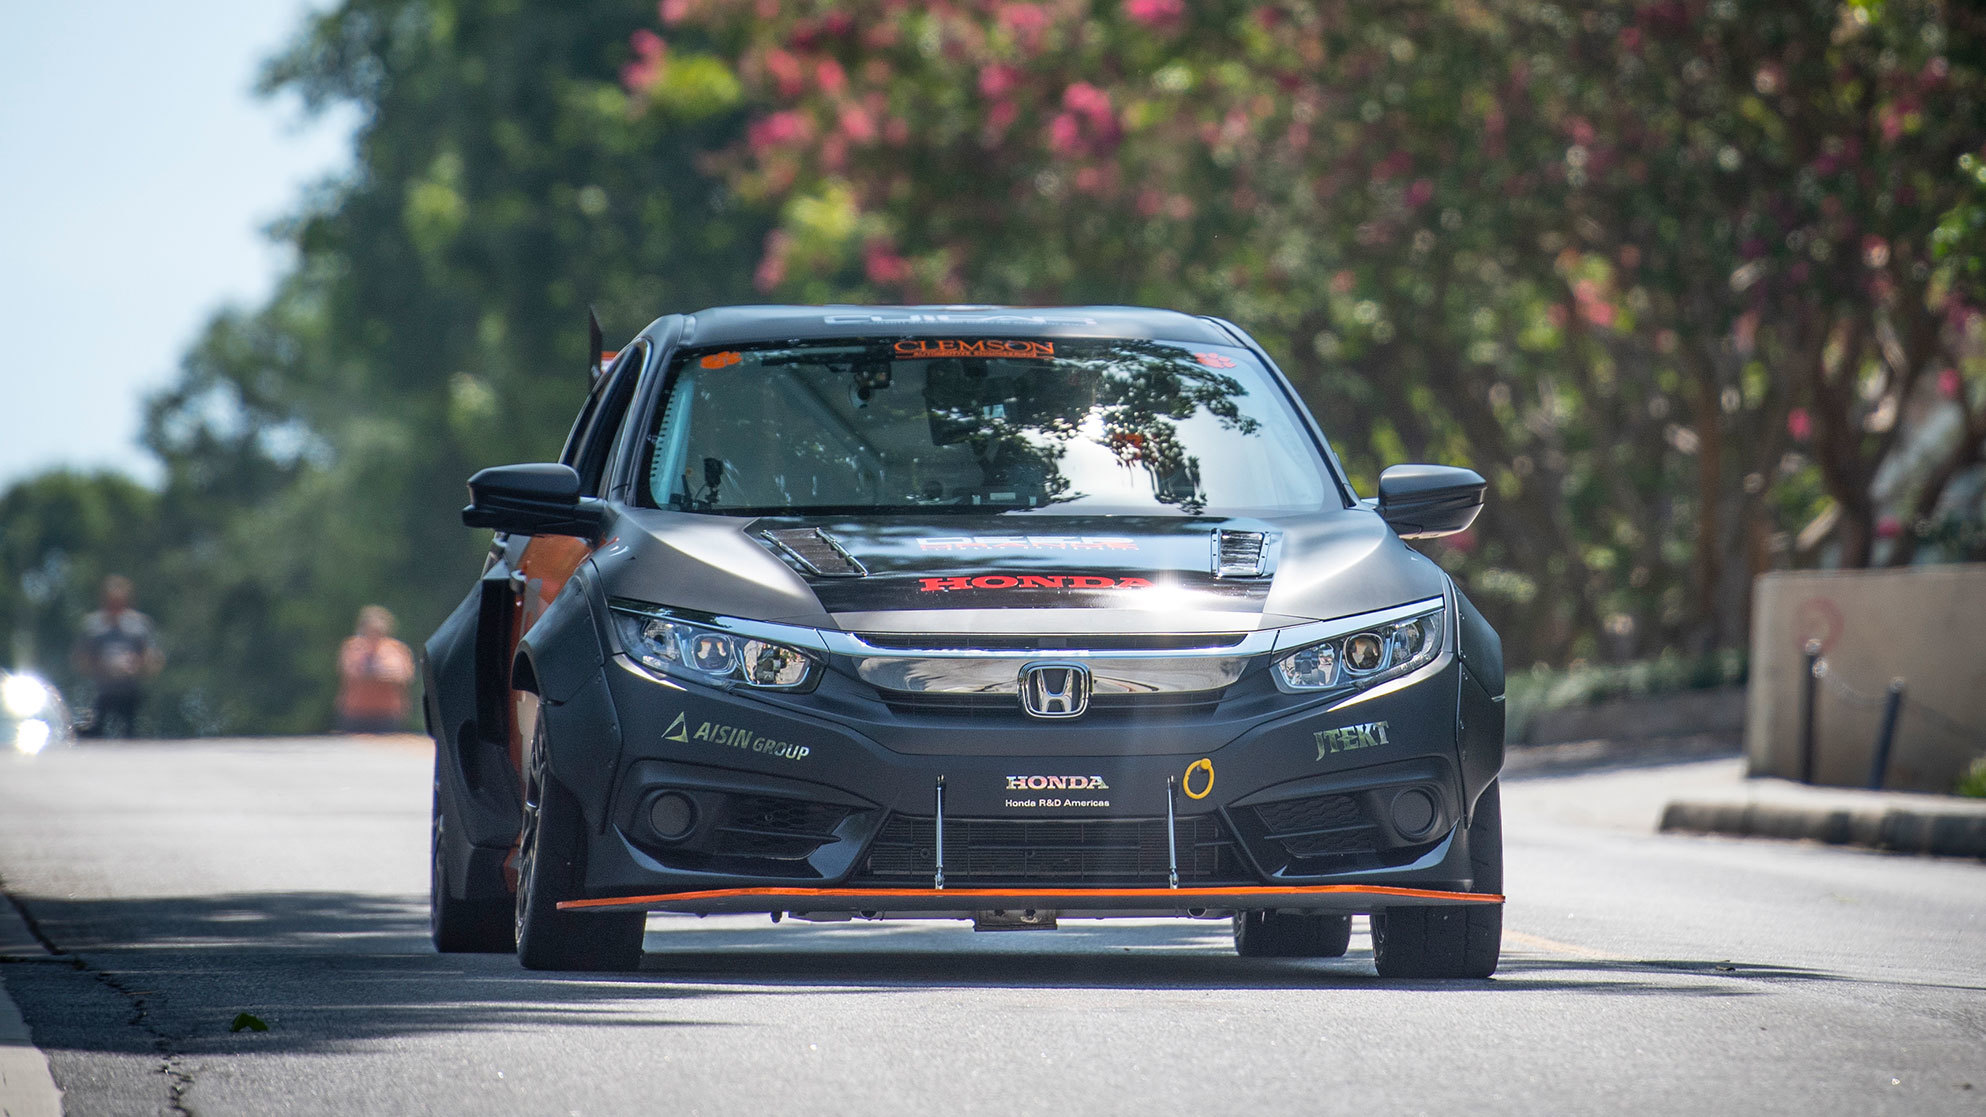 Honda Civic with hybrid powertrain by Clemson University (5)